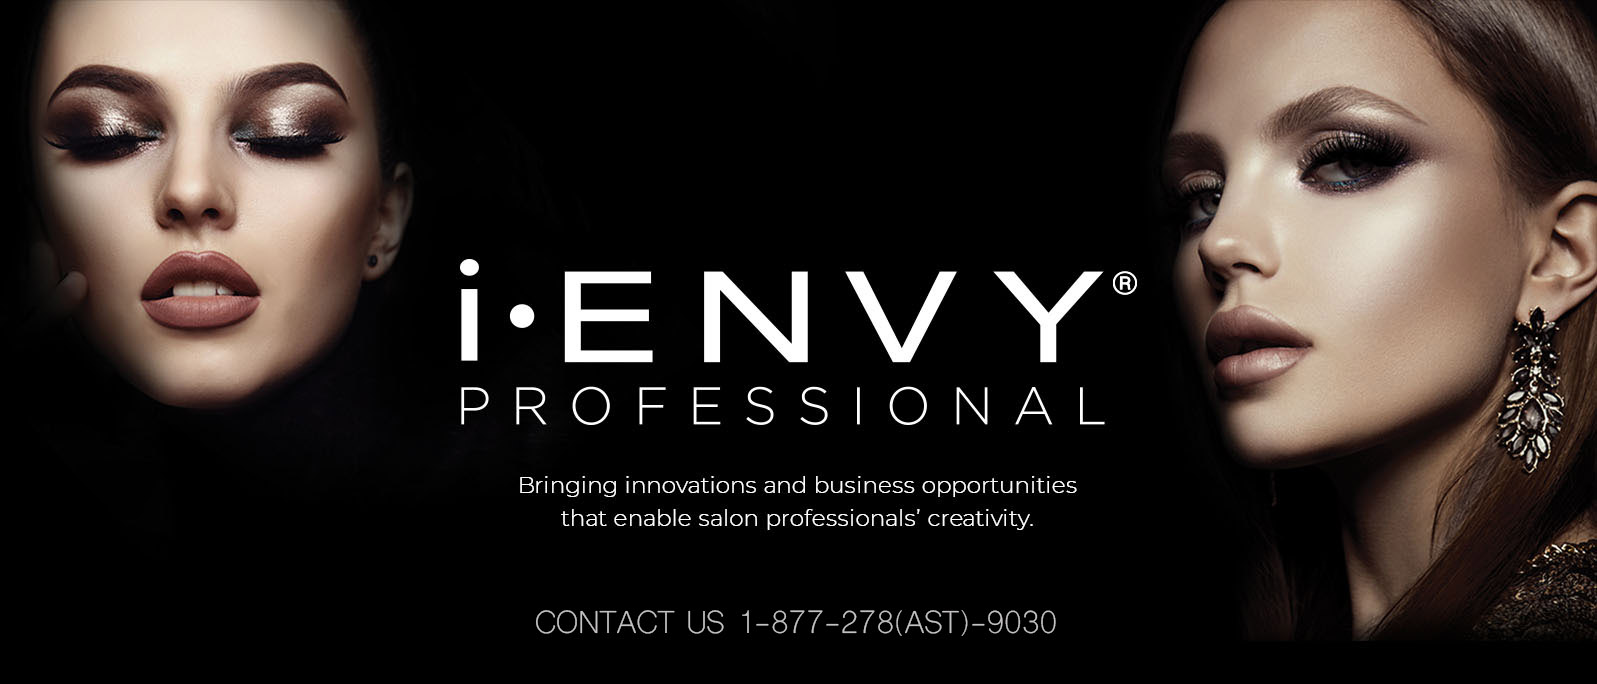 182329ba9c8 Professional - i•ENVY PROFESSIONAL - #1 Premium Natural Hair Lashes,  guaranteed by professionals